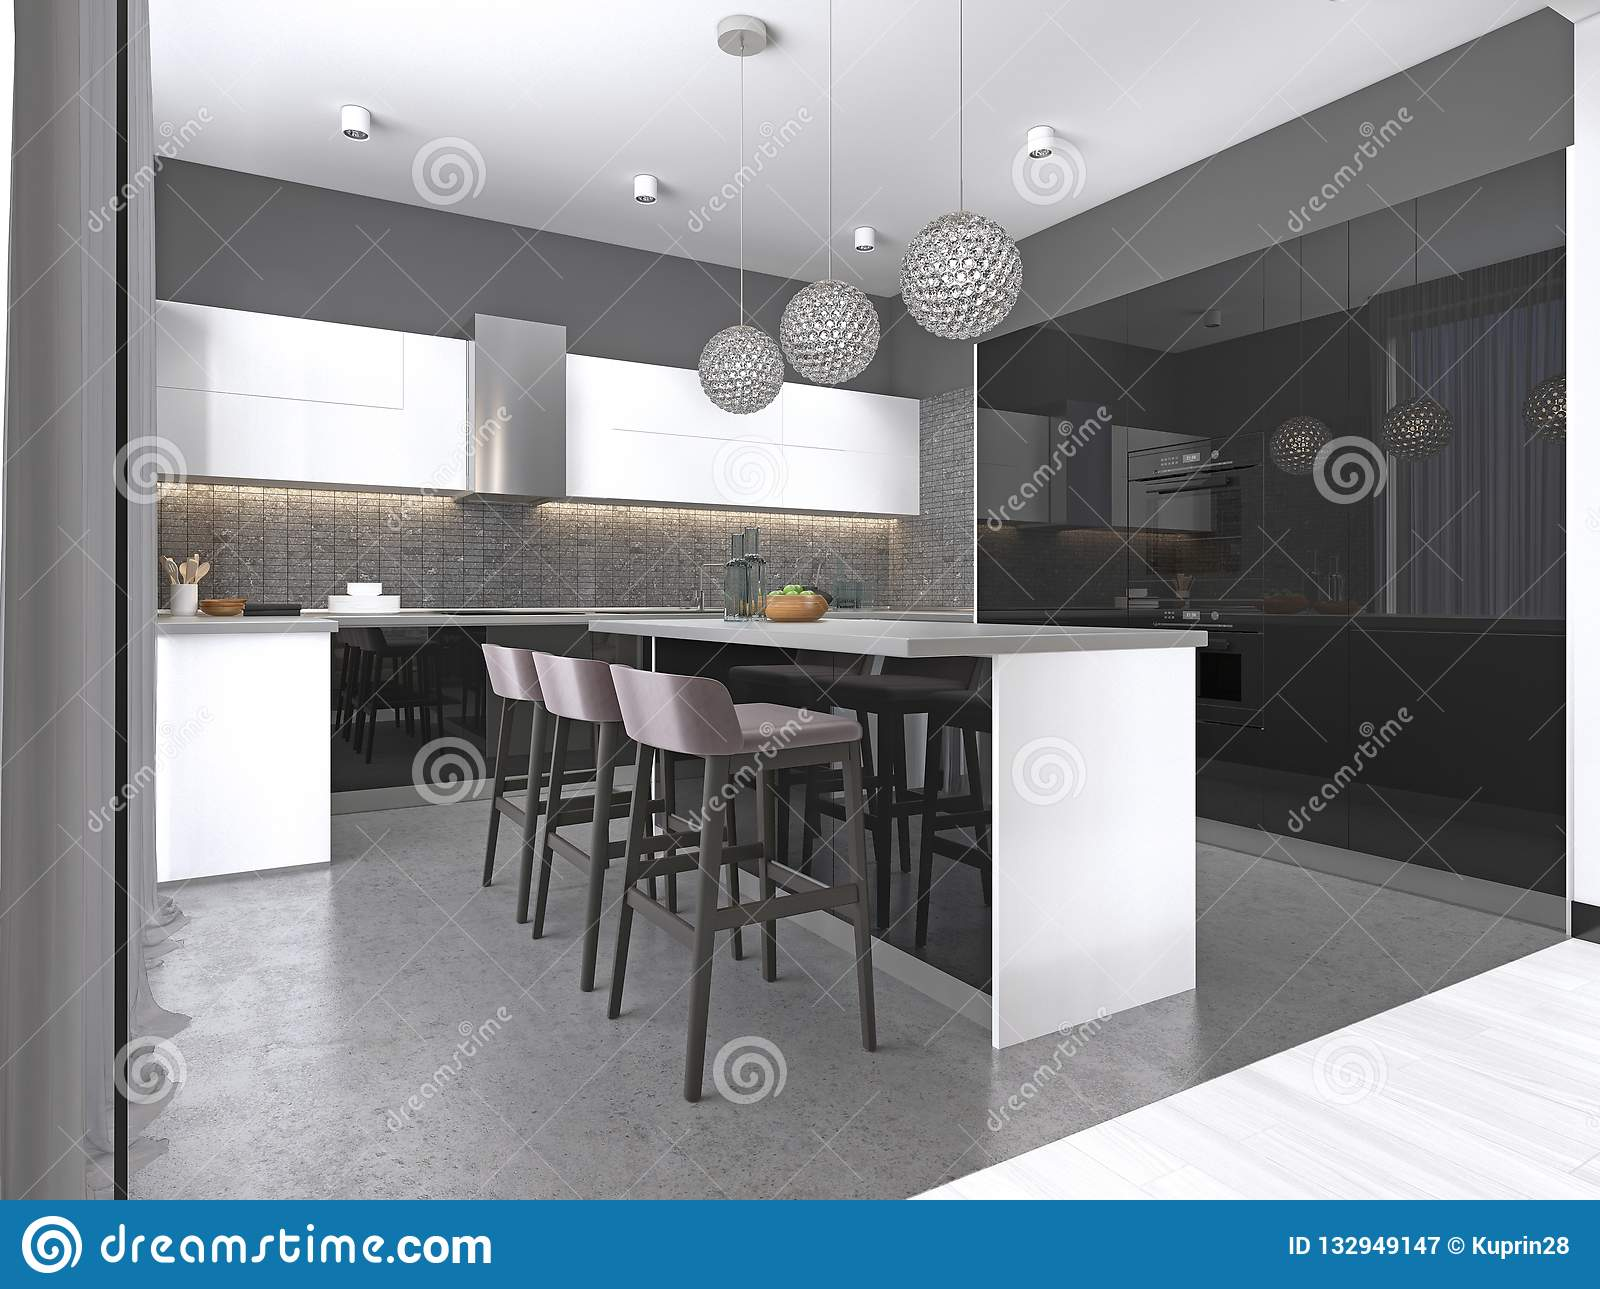 Kitchen Island With Three Bar Stools And Round Glass ...